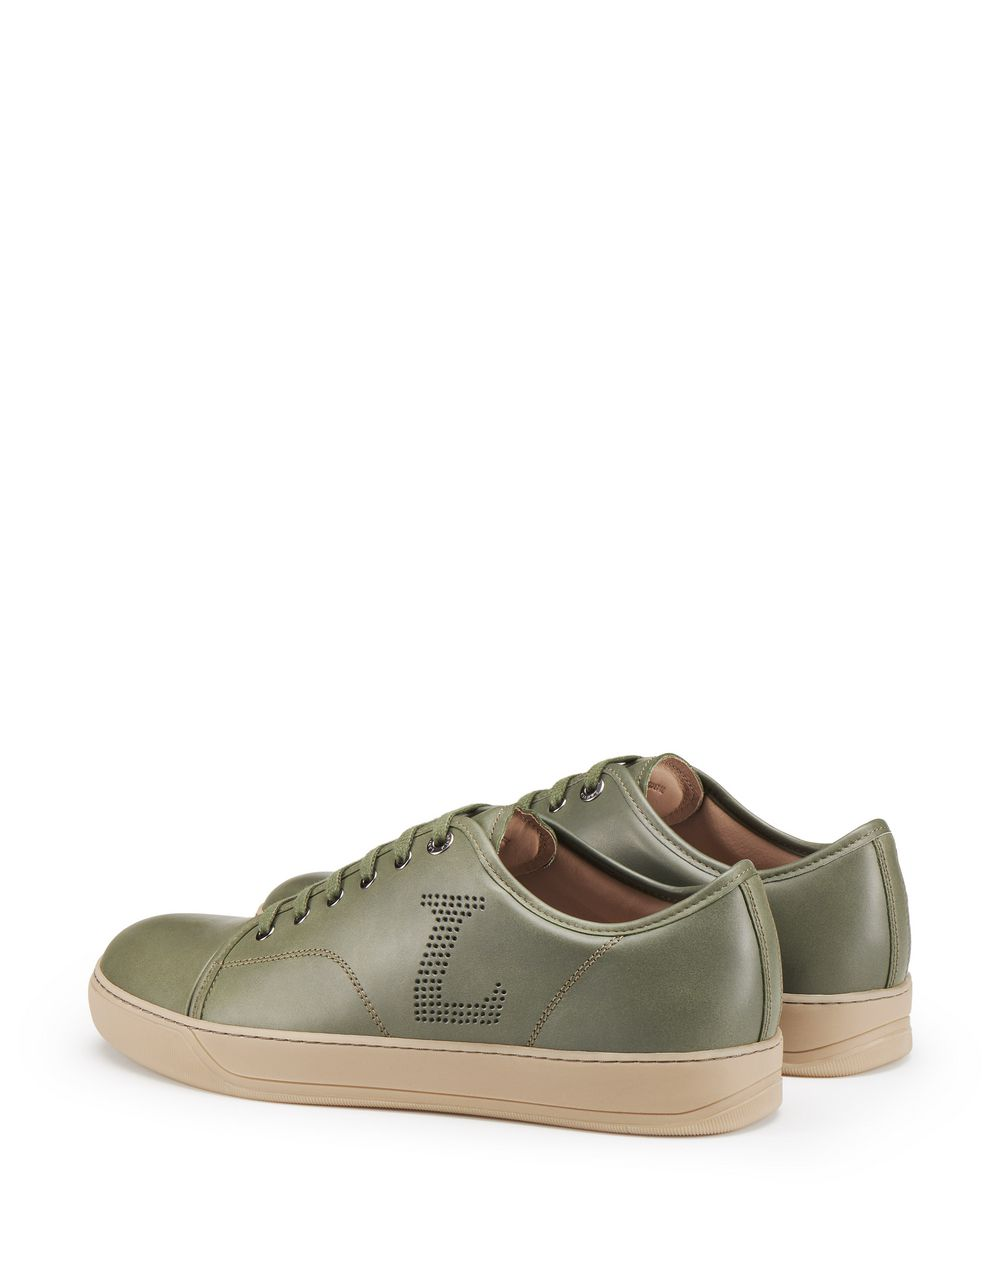 SNEAKERS IN NAPPA DI VITELLO - Lanvin